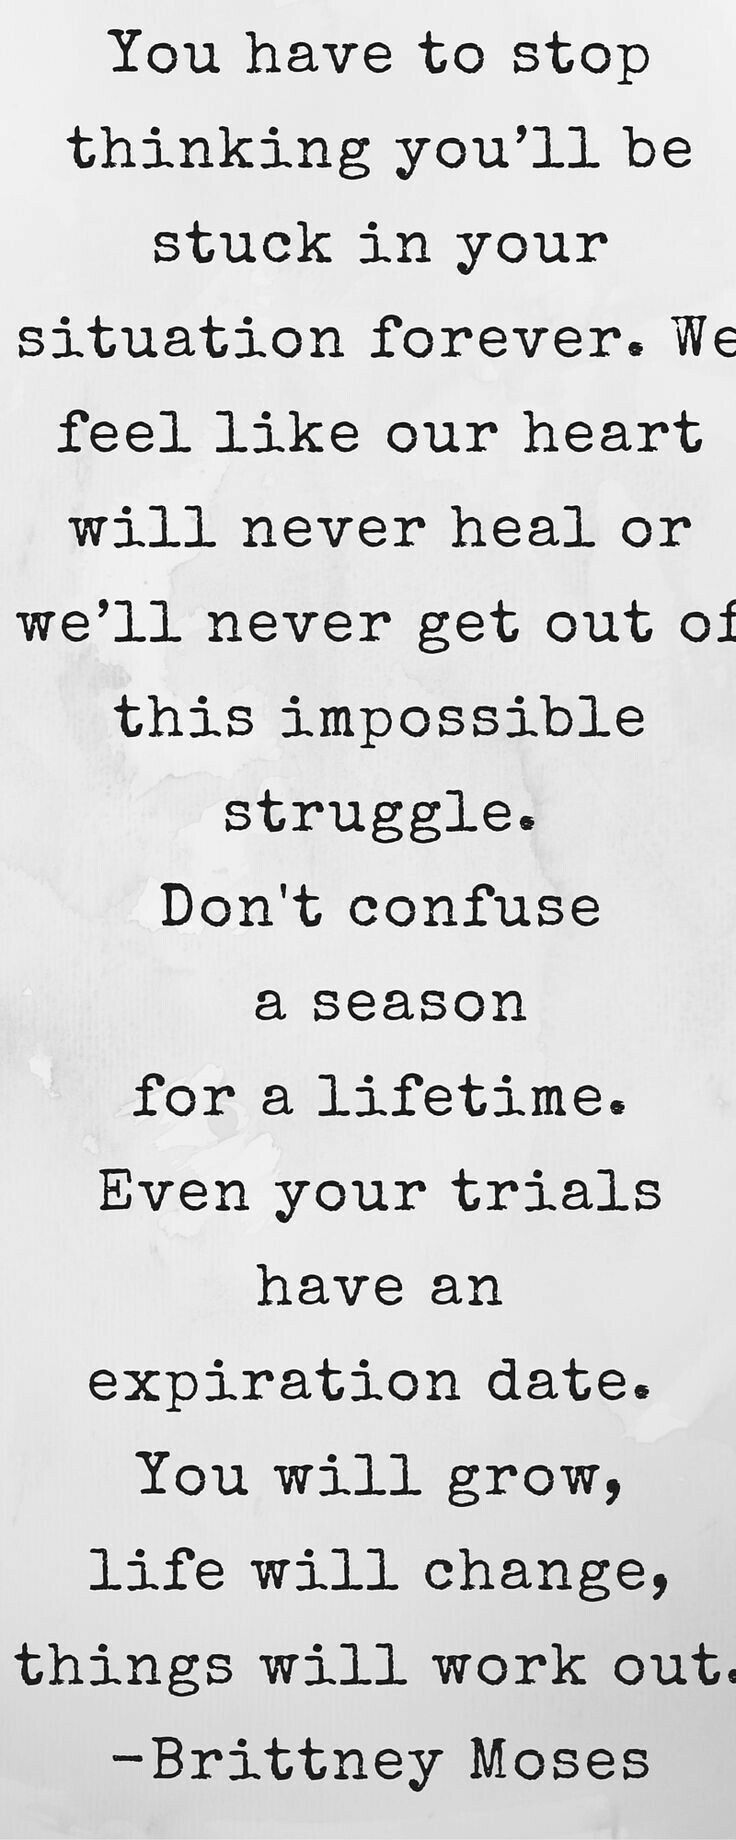 Quotes About Moving Away Don't Confuse A Season For A Lifetimethis Too Shall Pass